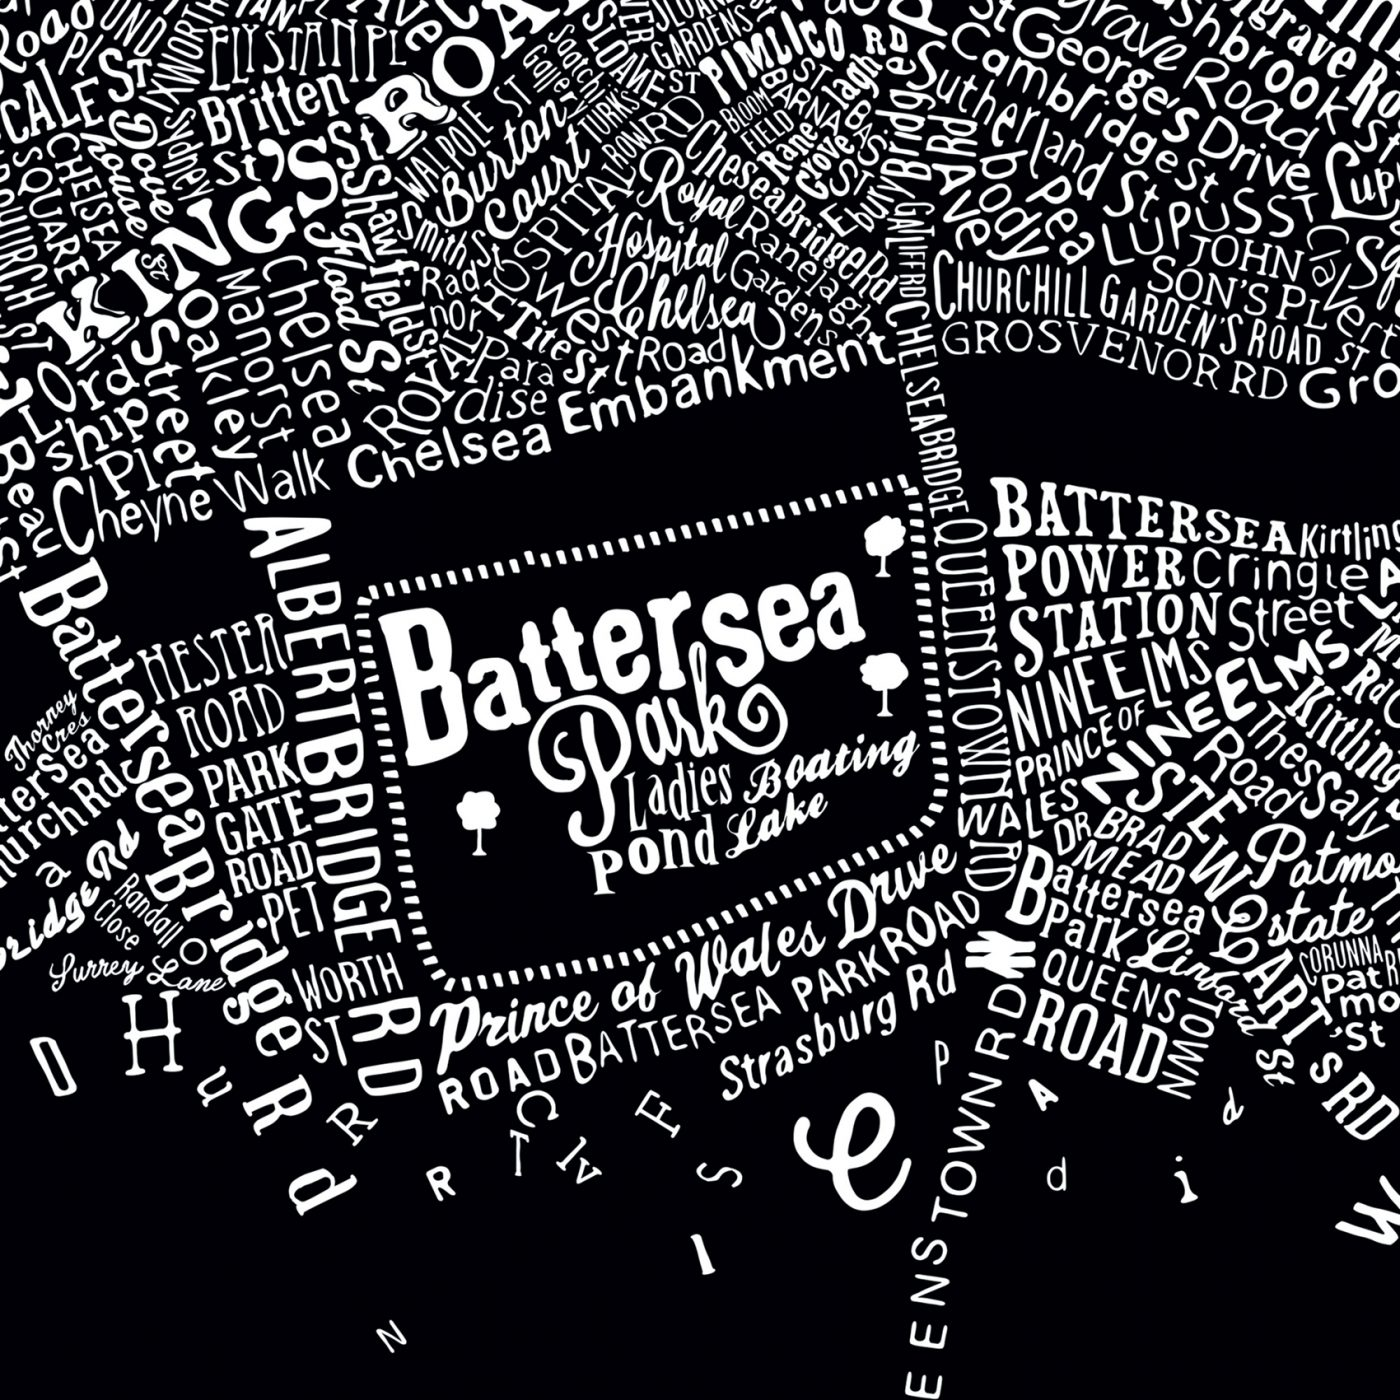 Road Map Central London.The Typographic Street Map Of Central London Run For The Hills